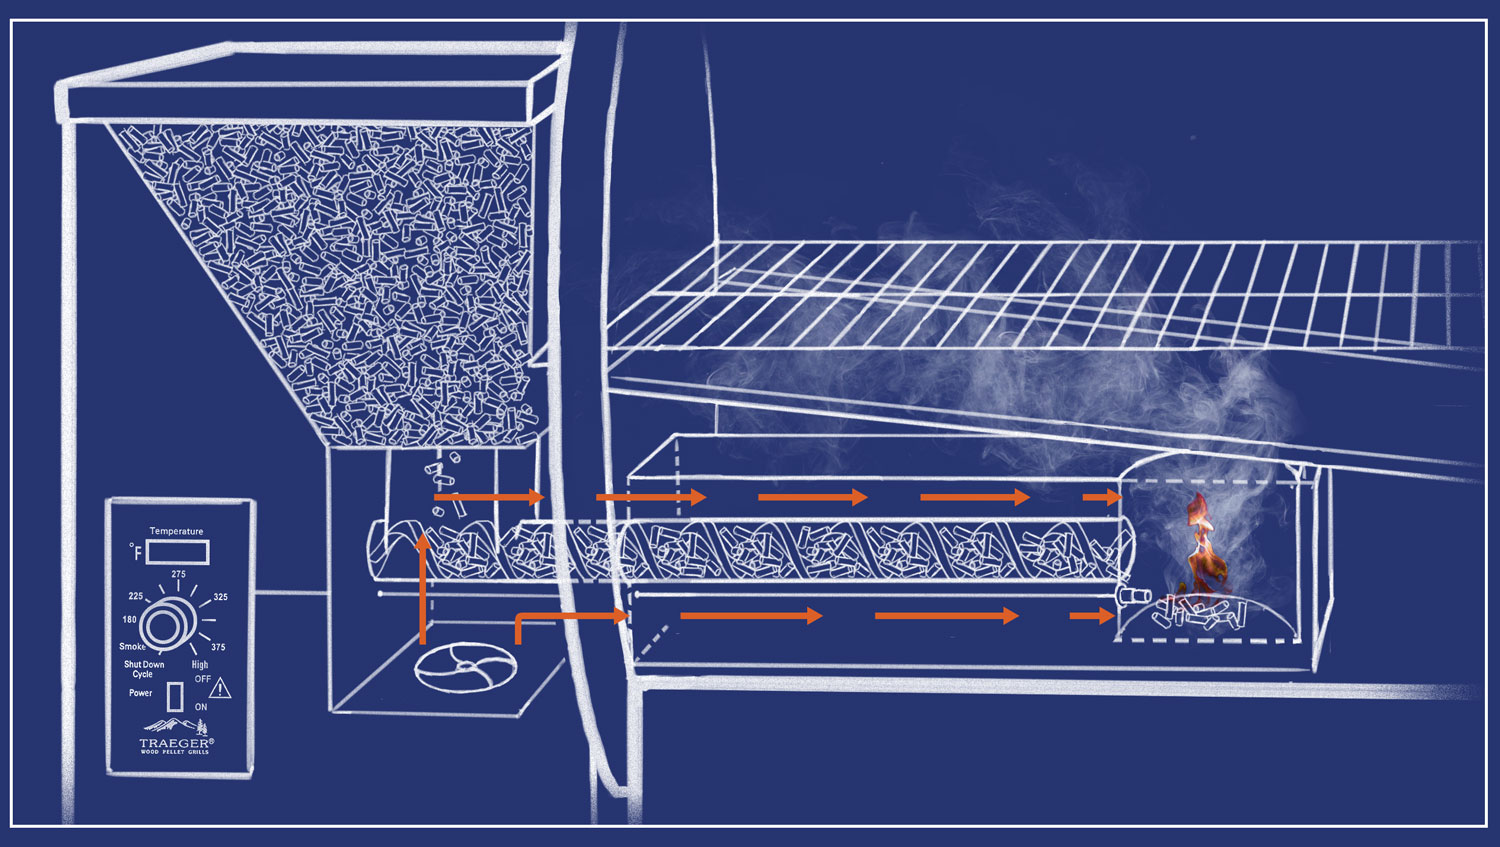 Wire Schematic For Traeger - traeger parts diagram